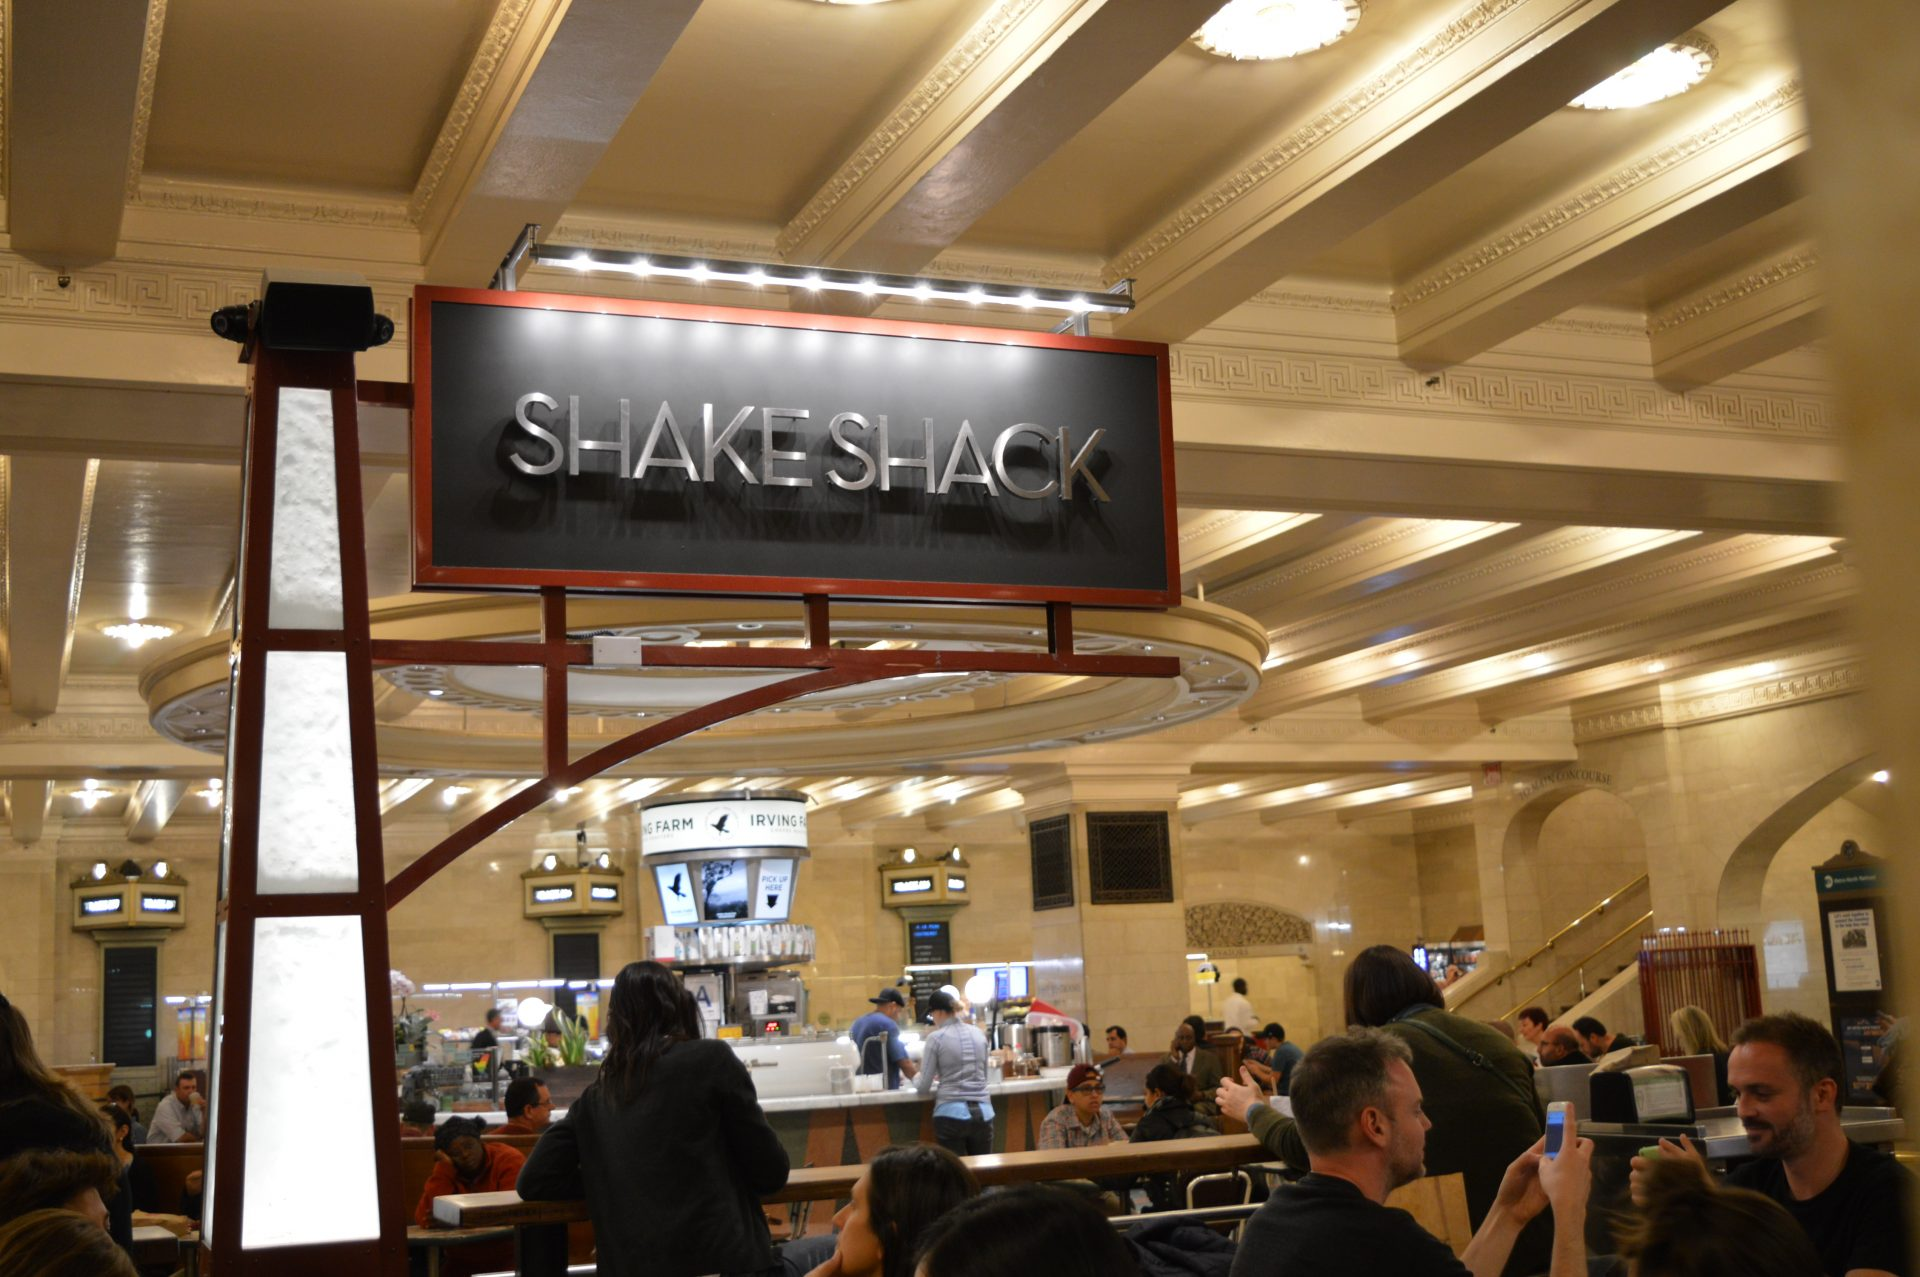 Shake Shack Grand Central Terminal